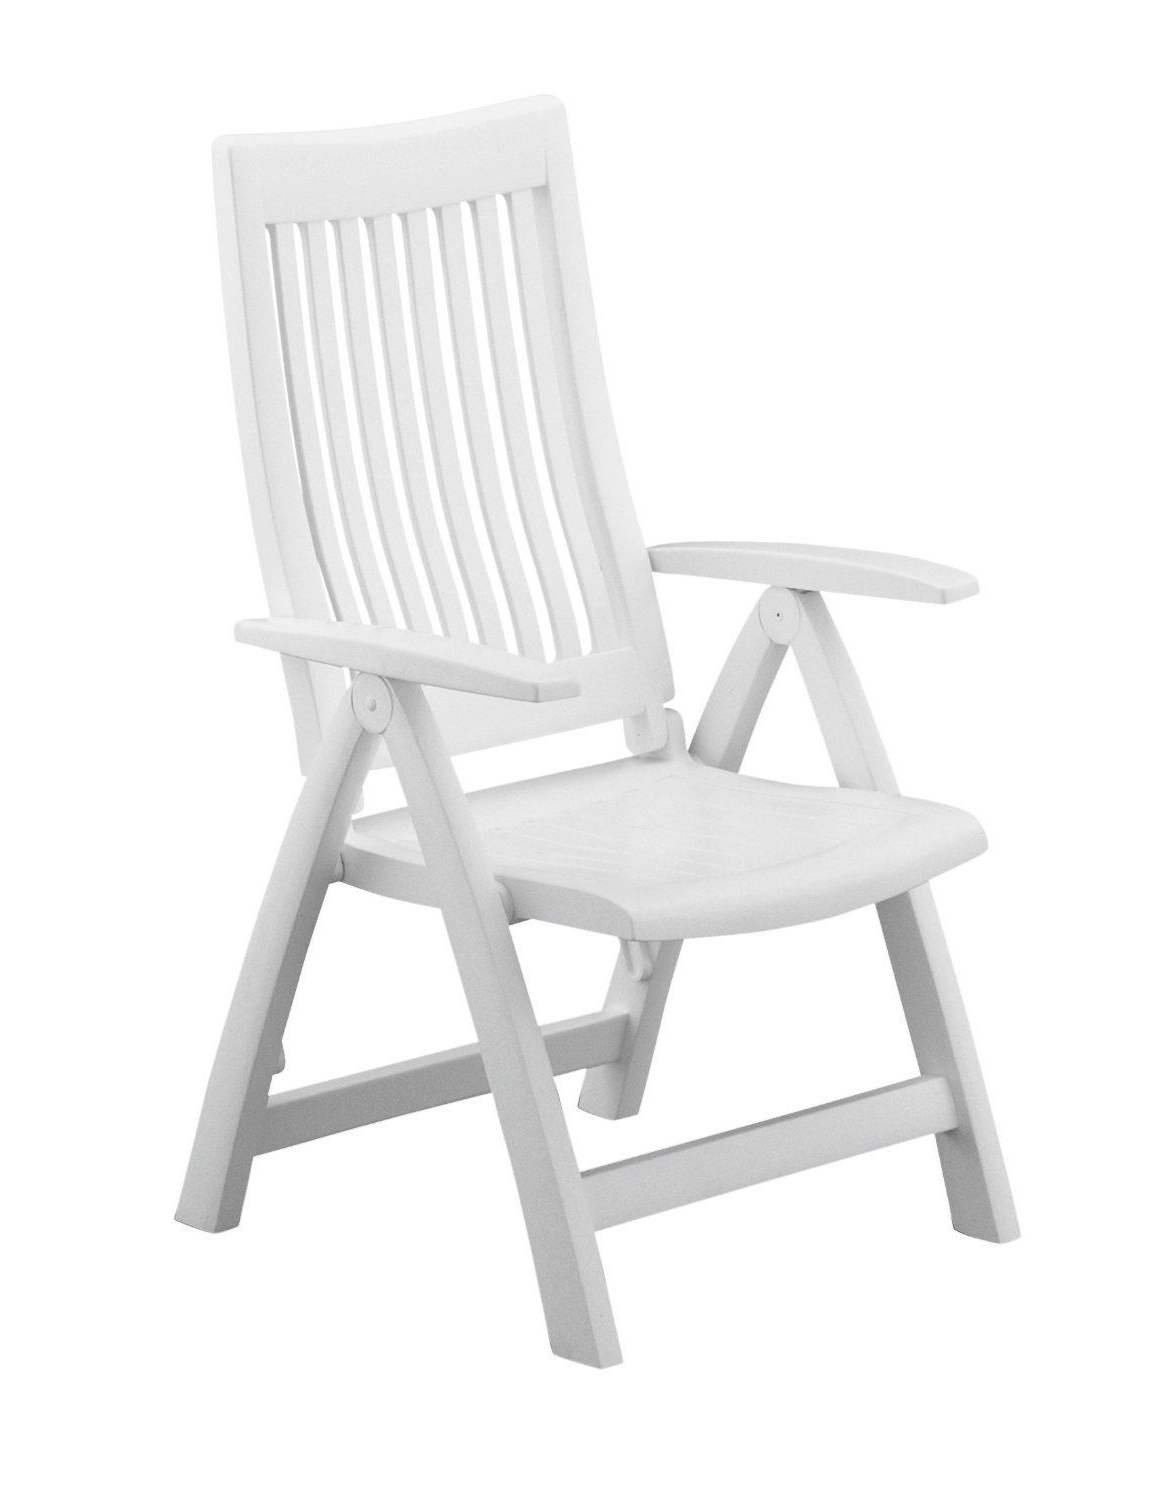 Favorite Amazon : Kettler Roma High Back Chair : Resin Chairs : Patio Inside Kettler Chaise Lounge Chairs (View 3 of 15)